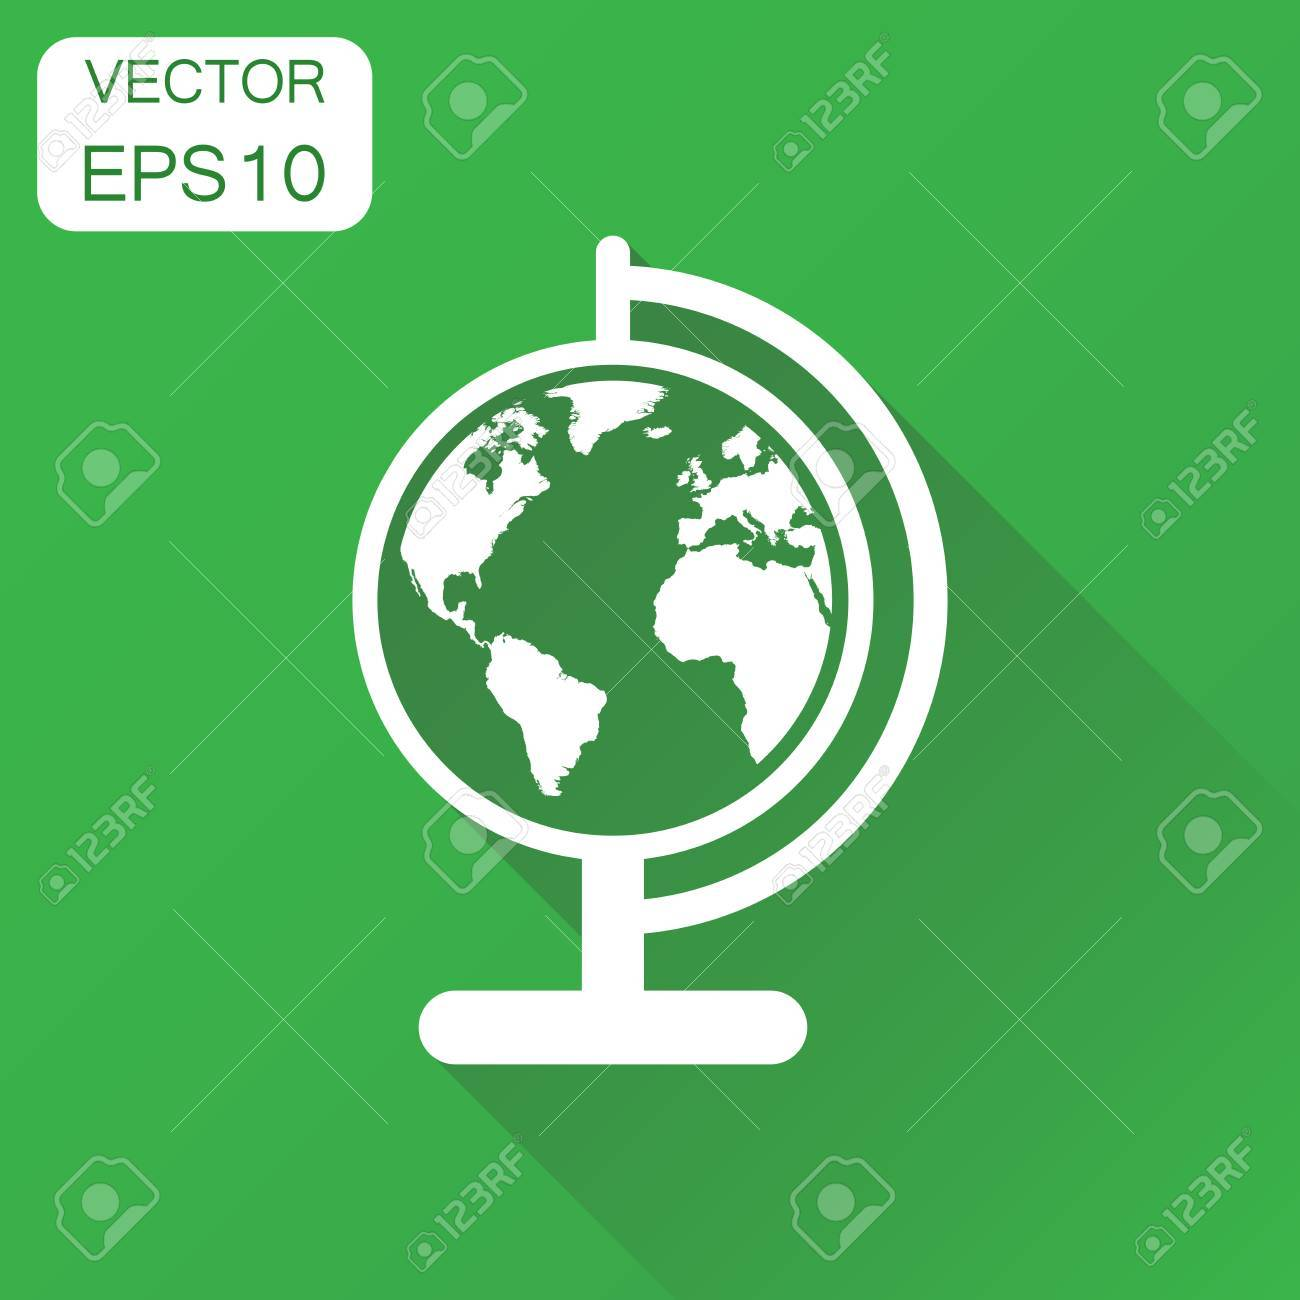 Globe world map icon business concept round earth pictogram globe world map icon business concept round earth pictogram vector illustration on green background gumiabroncs Image collections